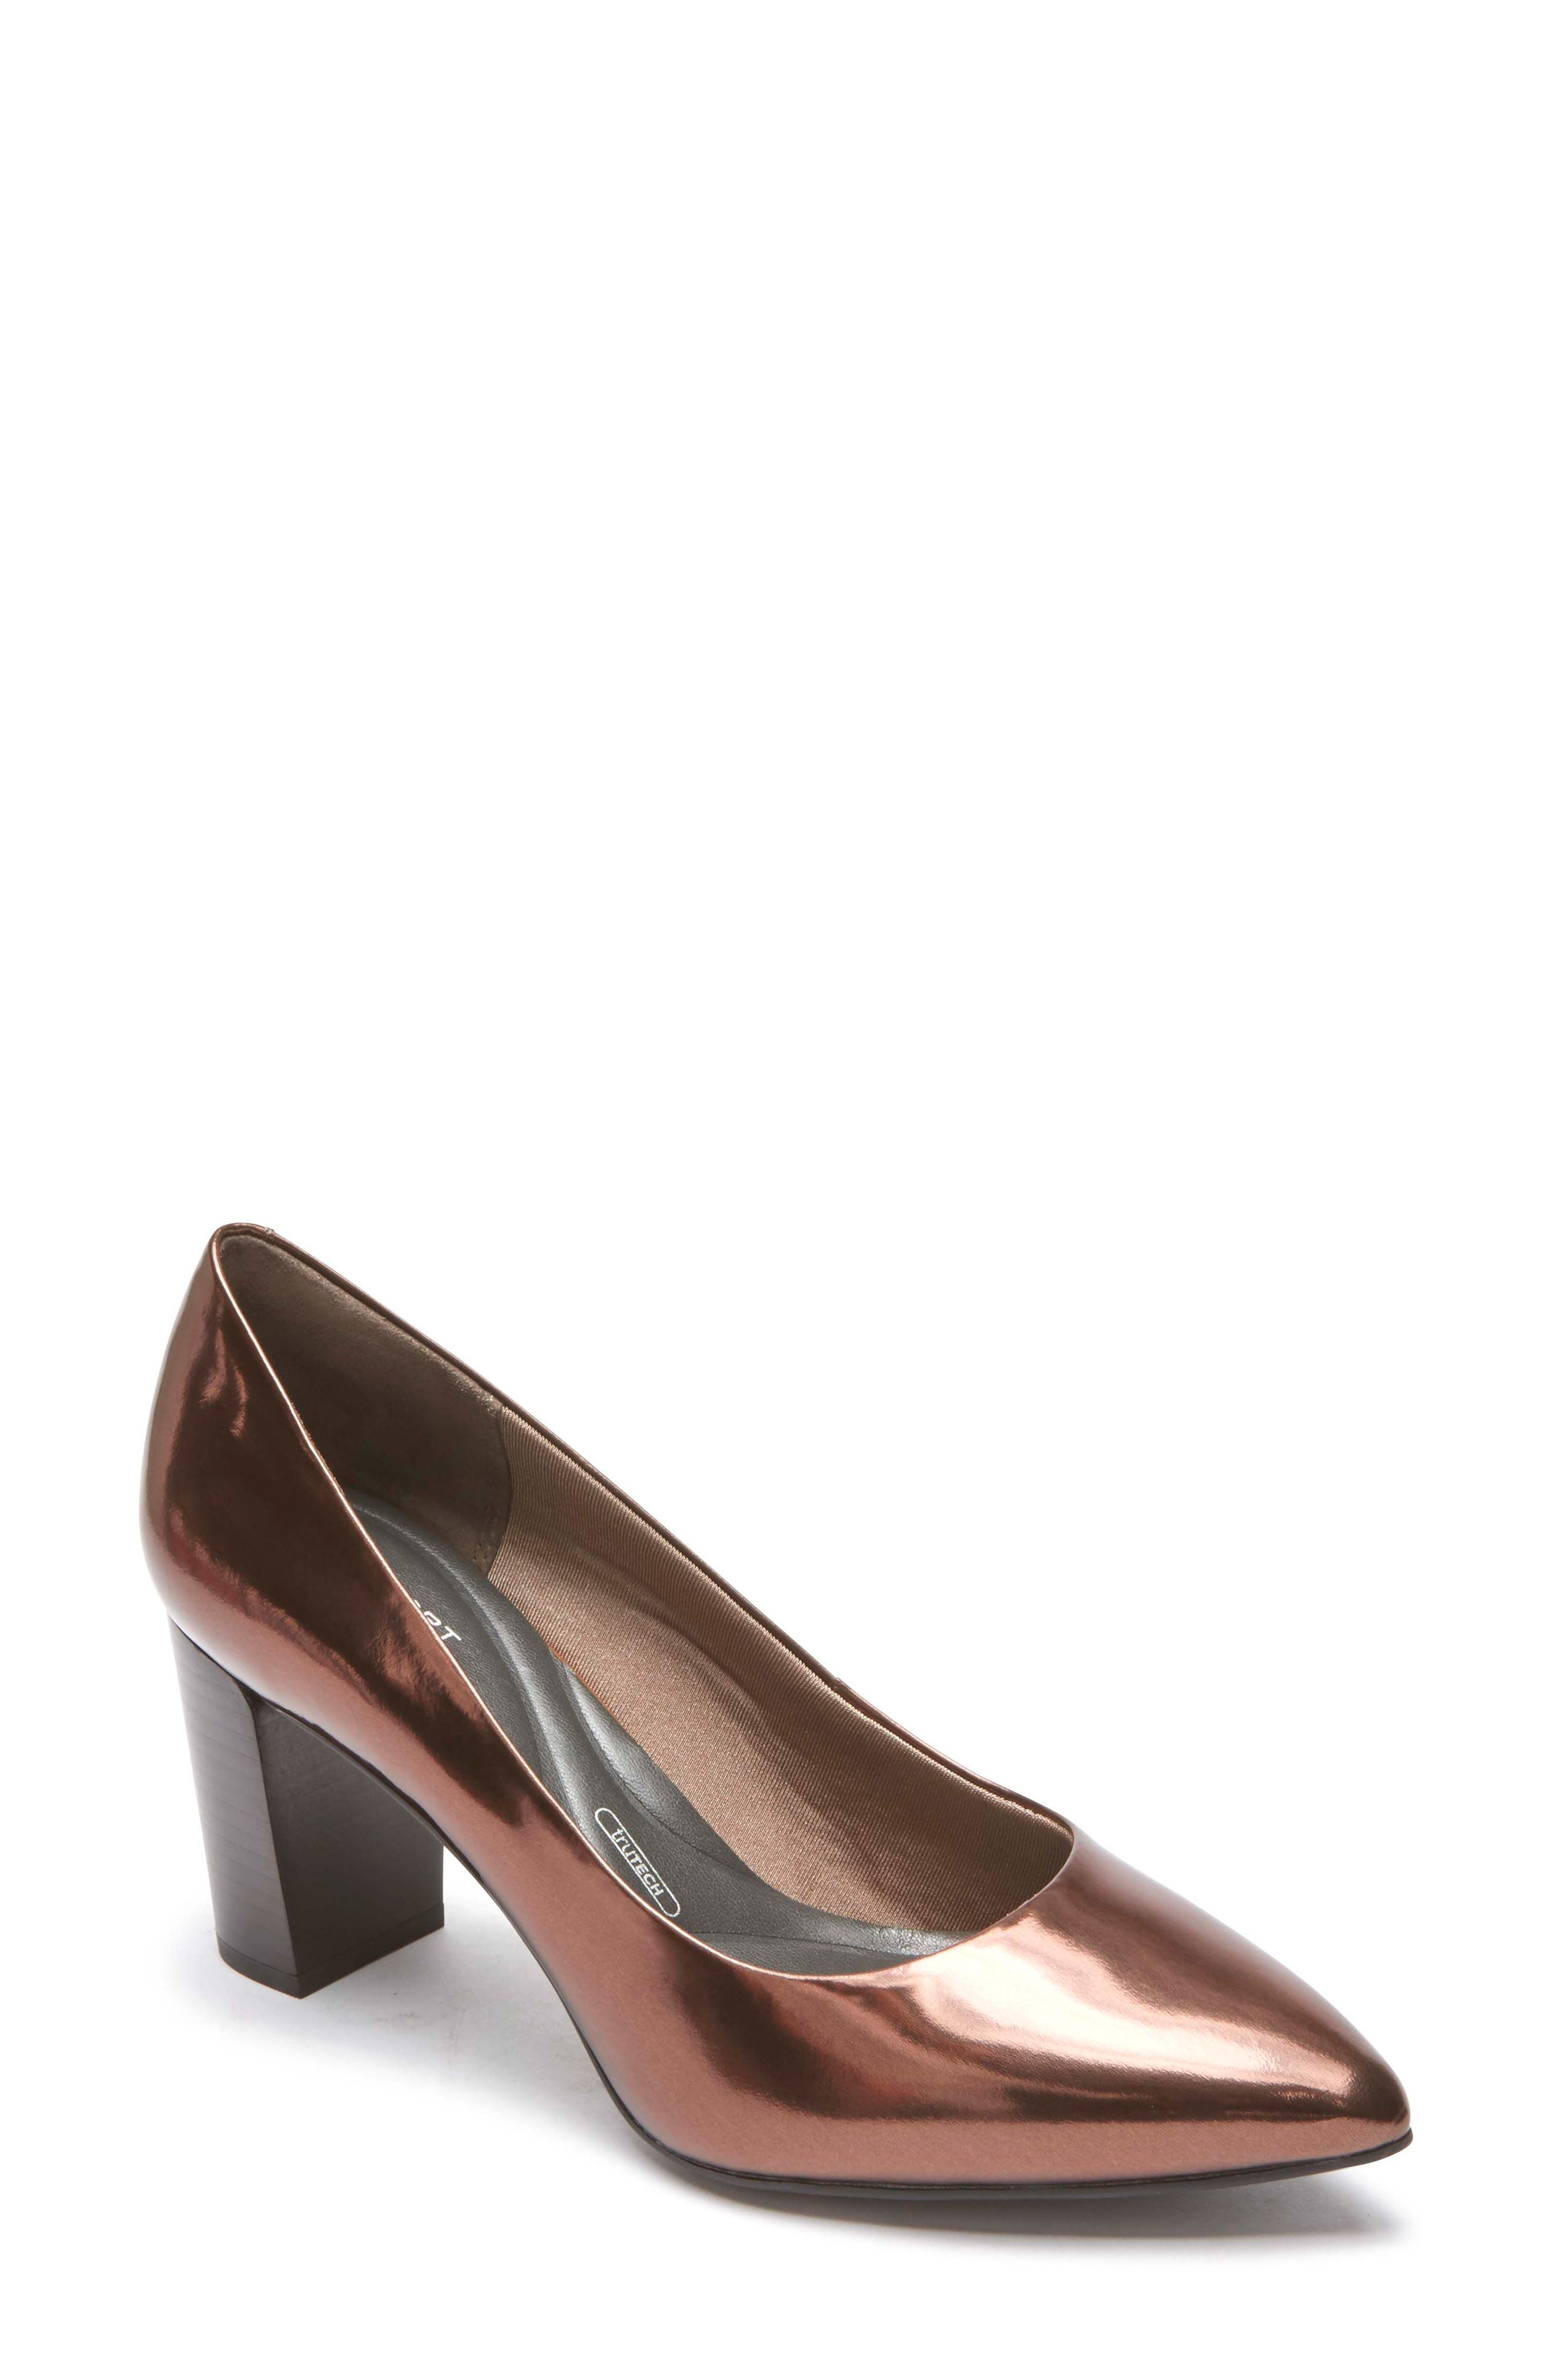 Total Motion Violina Luxe Pointy Toe Pump,                             Main thumbnail 1, color,                             BRONZE PATENT LEATHER